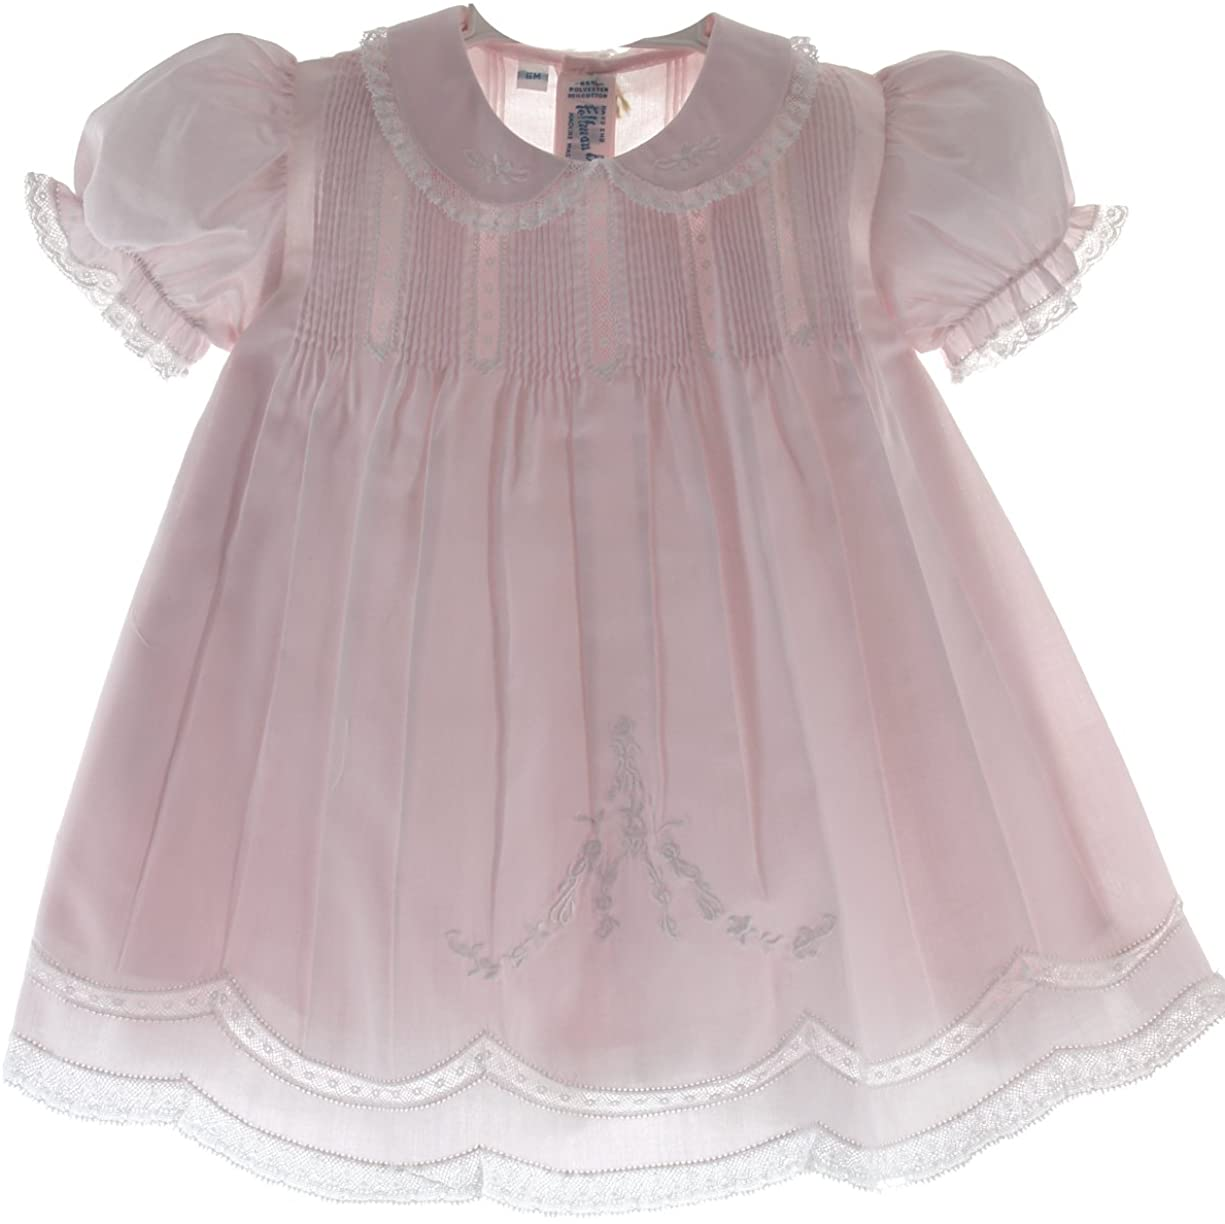 Feltman Brothers Baby Girls Pink Slip Dress with Lace Trim